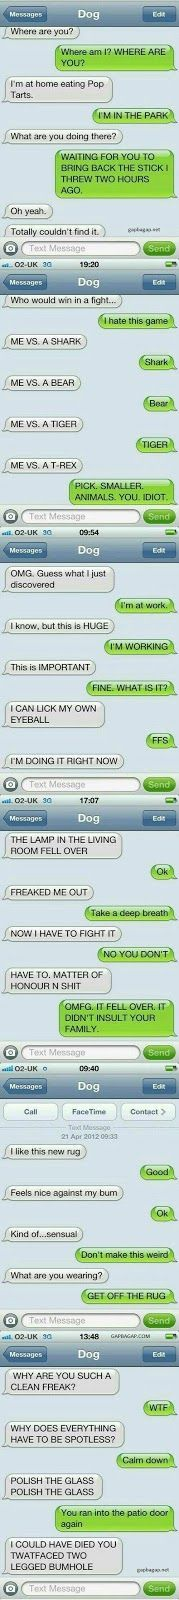 """5+ Funny Text Messages ft. Funny Dogs """"How To Start A Game Or Utility App Business In Less Than A Week... With Zero App Development!"""""""